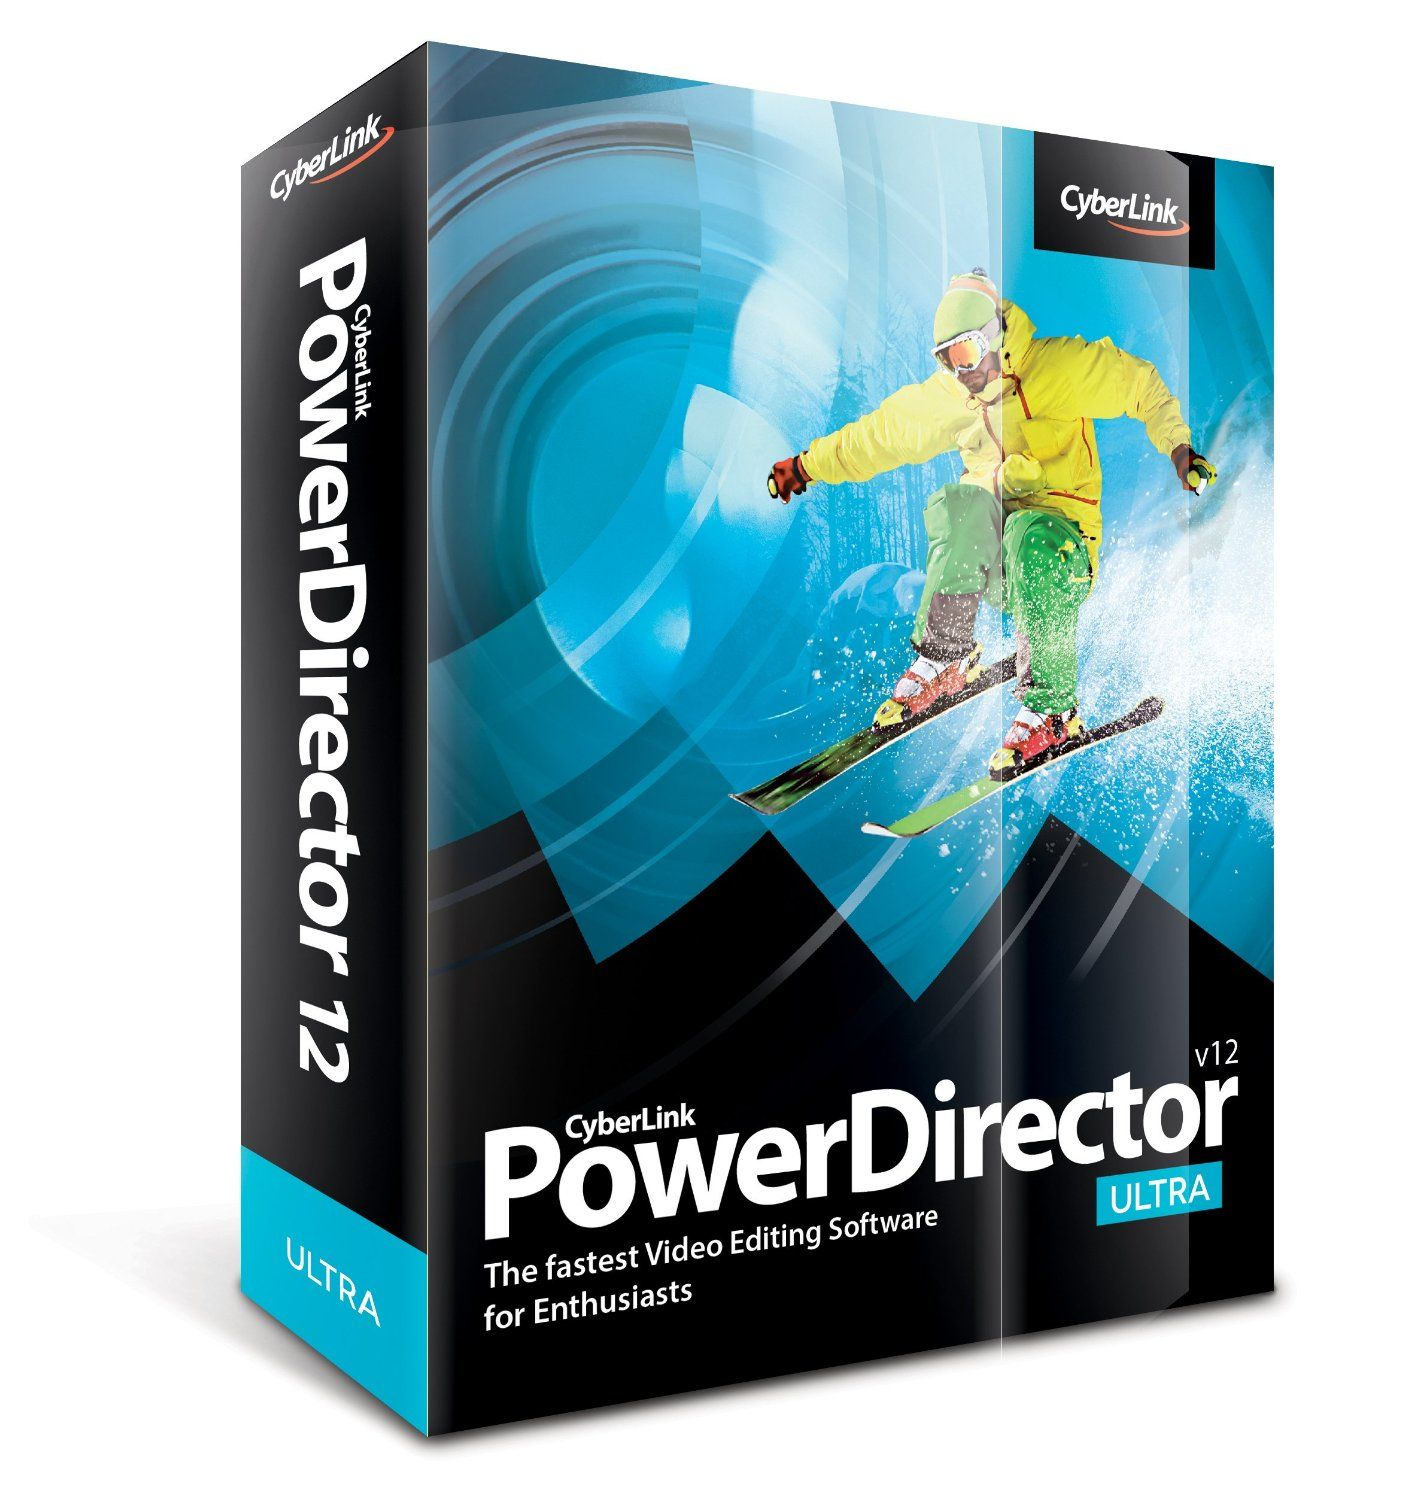 cyberlink powerdirector 12 crack ultra and activation key full version free download